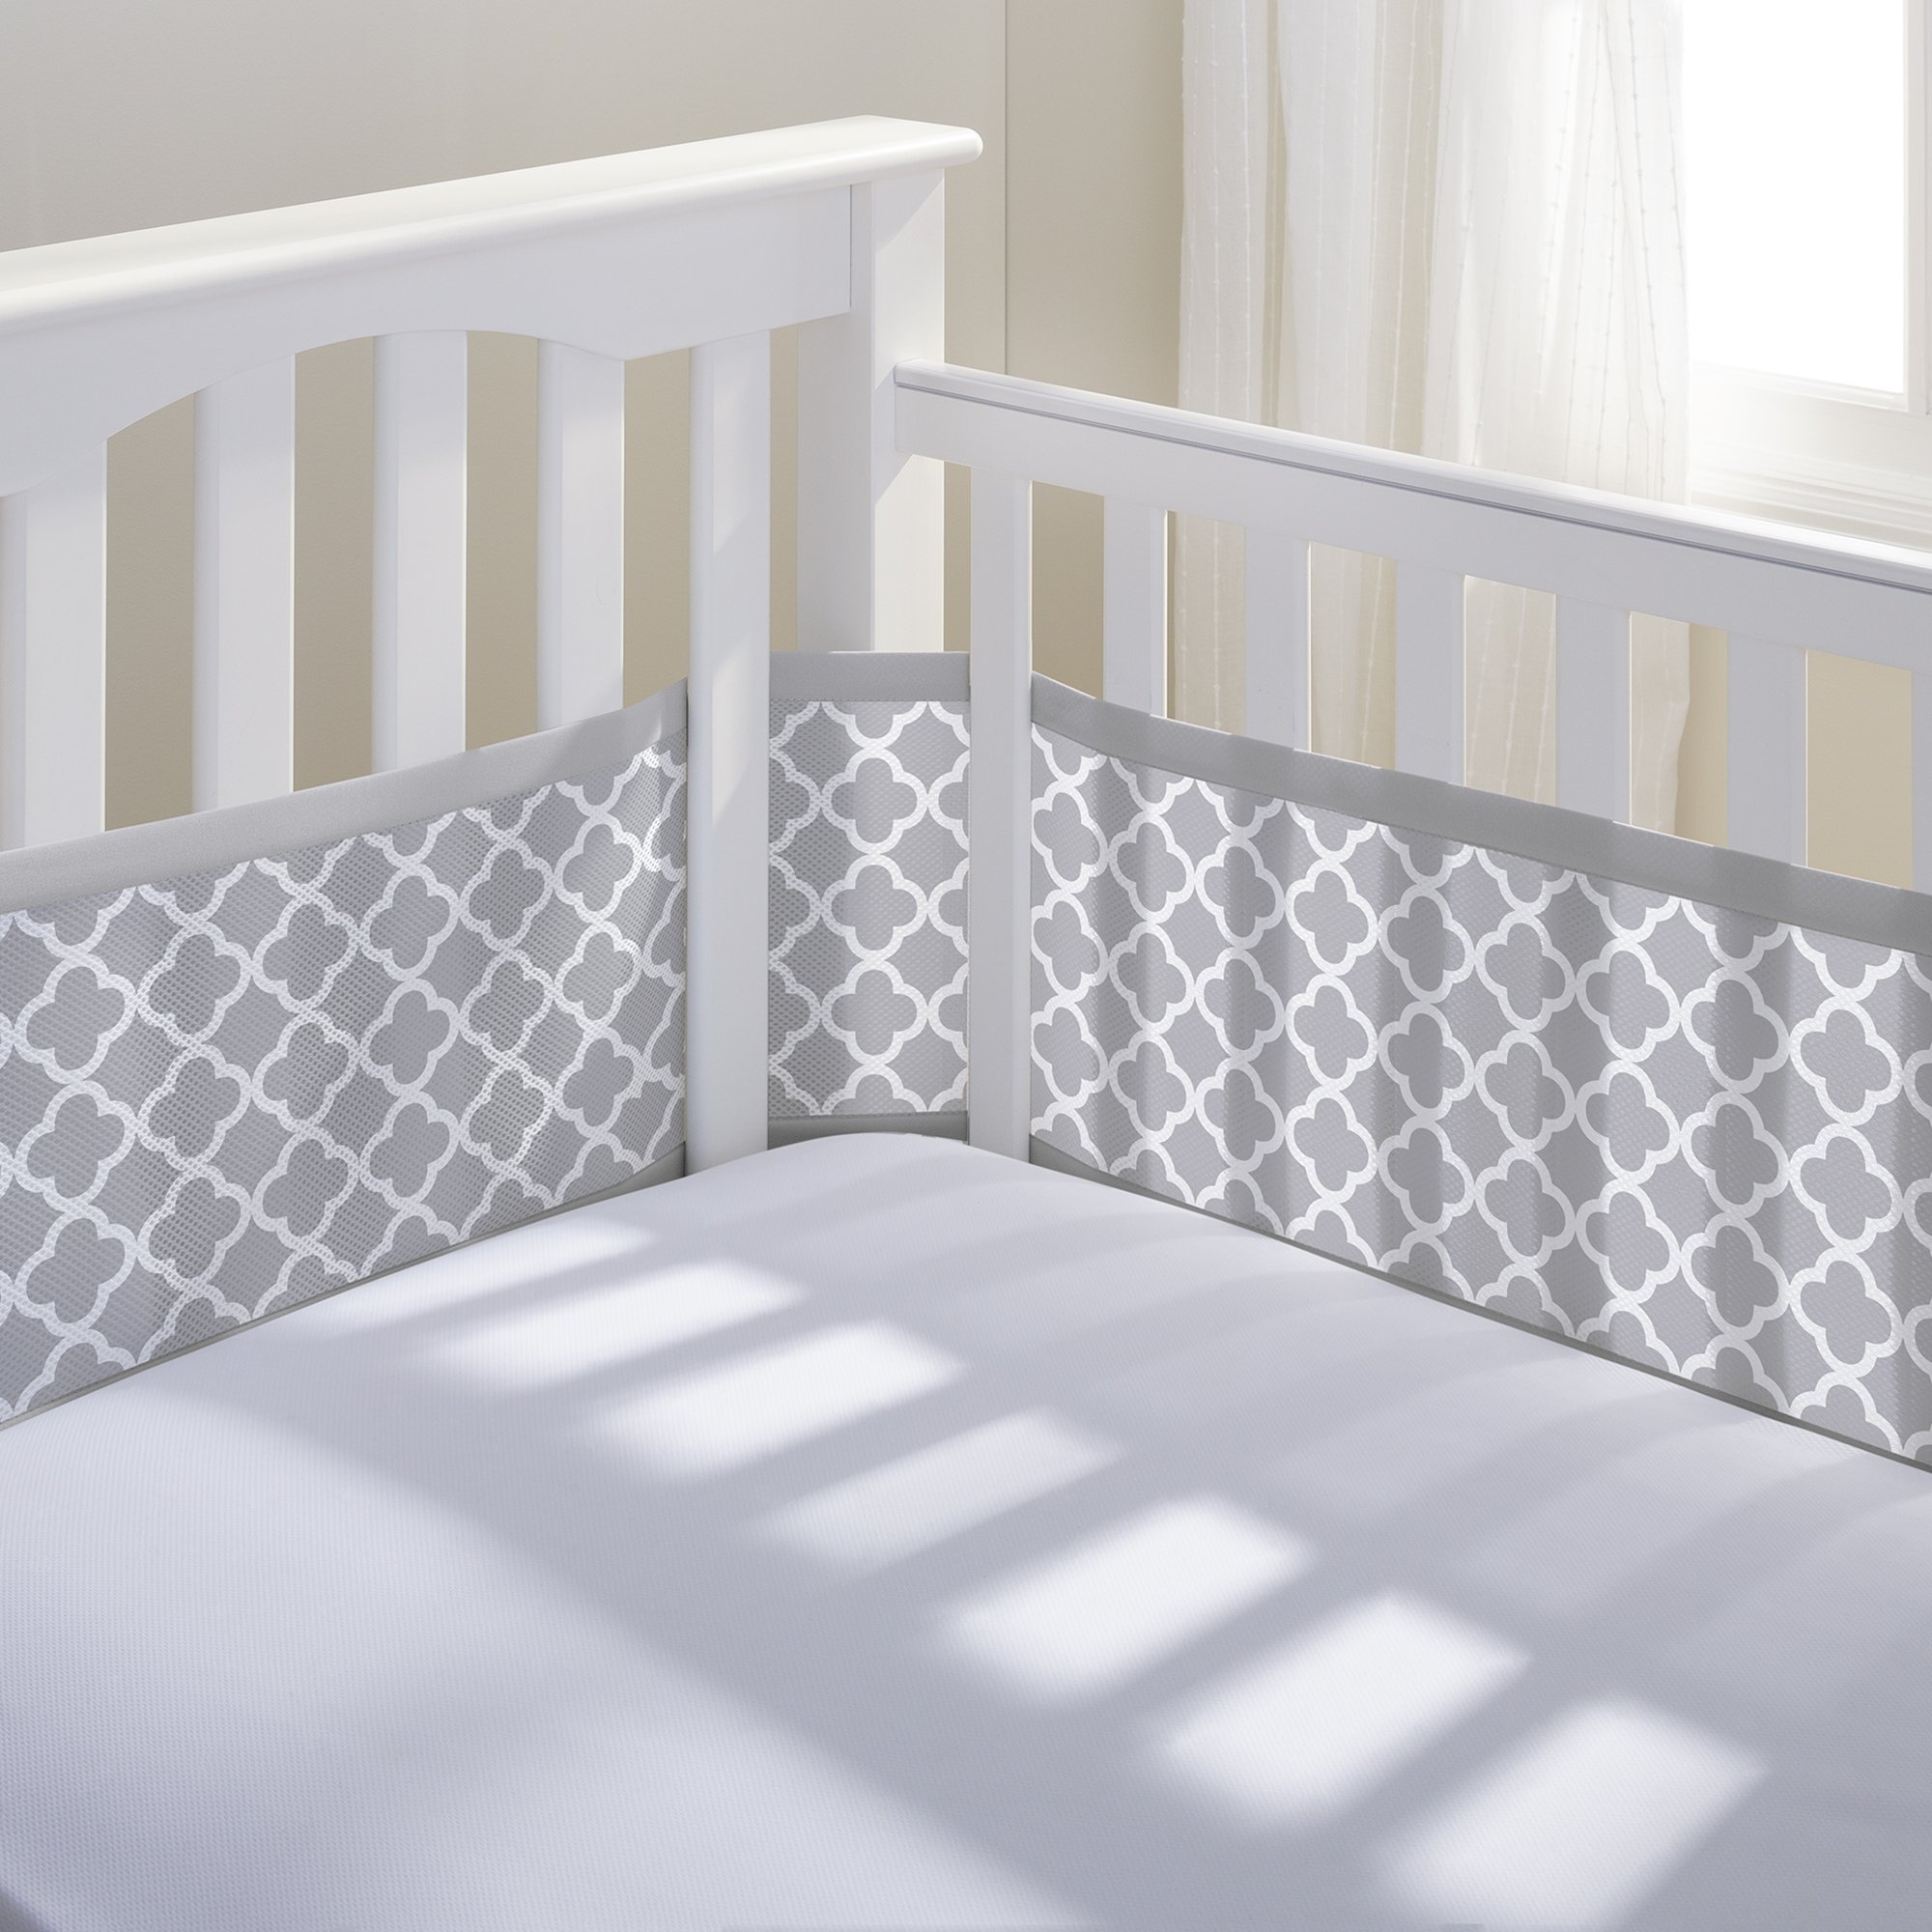 BreathableBaby Classic Breathable Mesh Crib Liner - Gray Clover by BreathableBaby